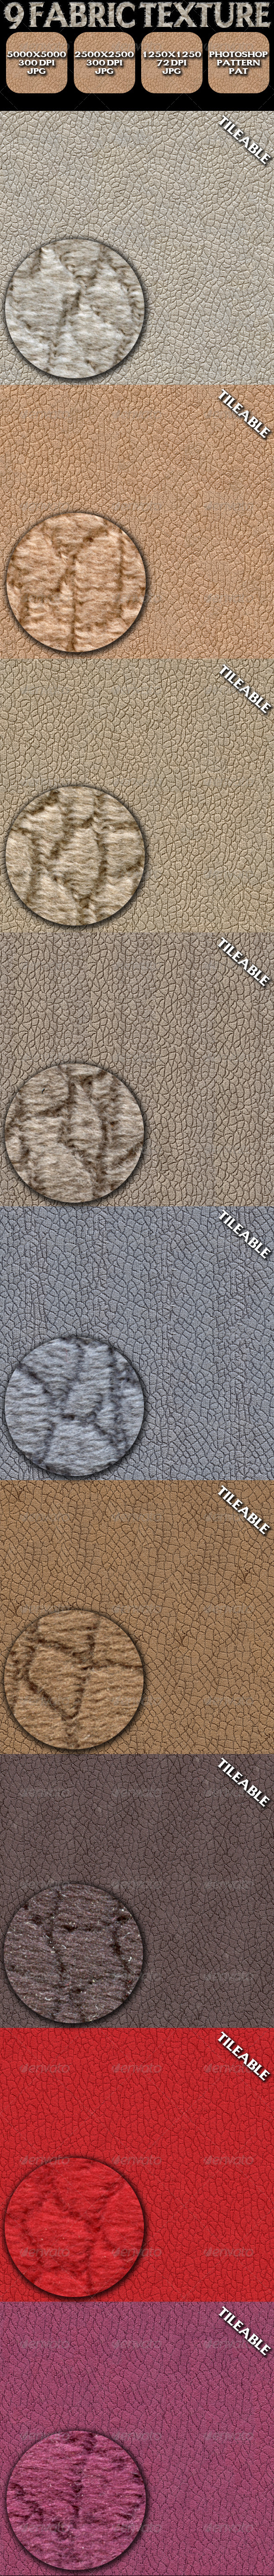 GraphicRiver 9 Fabric Texture Pack 5249164